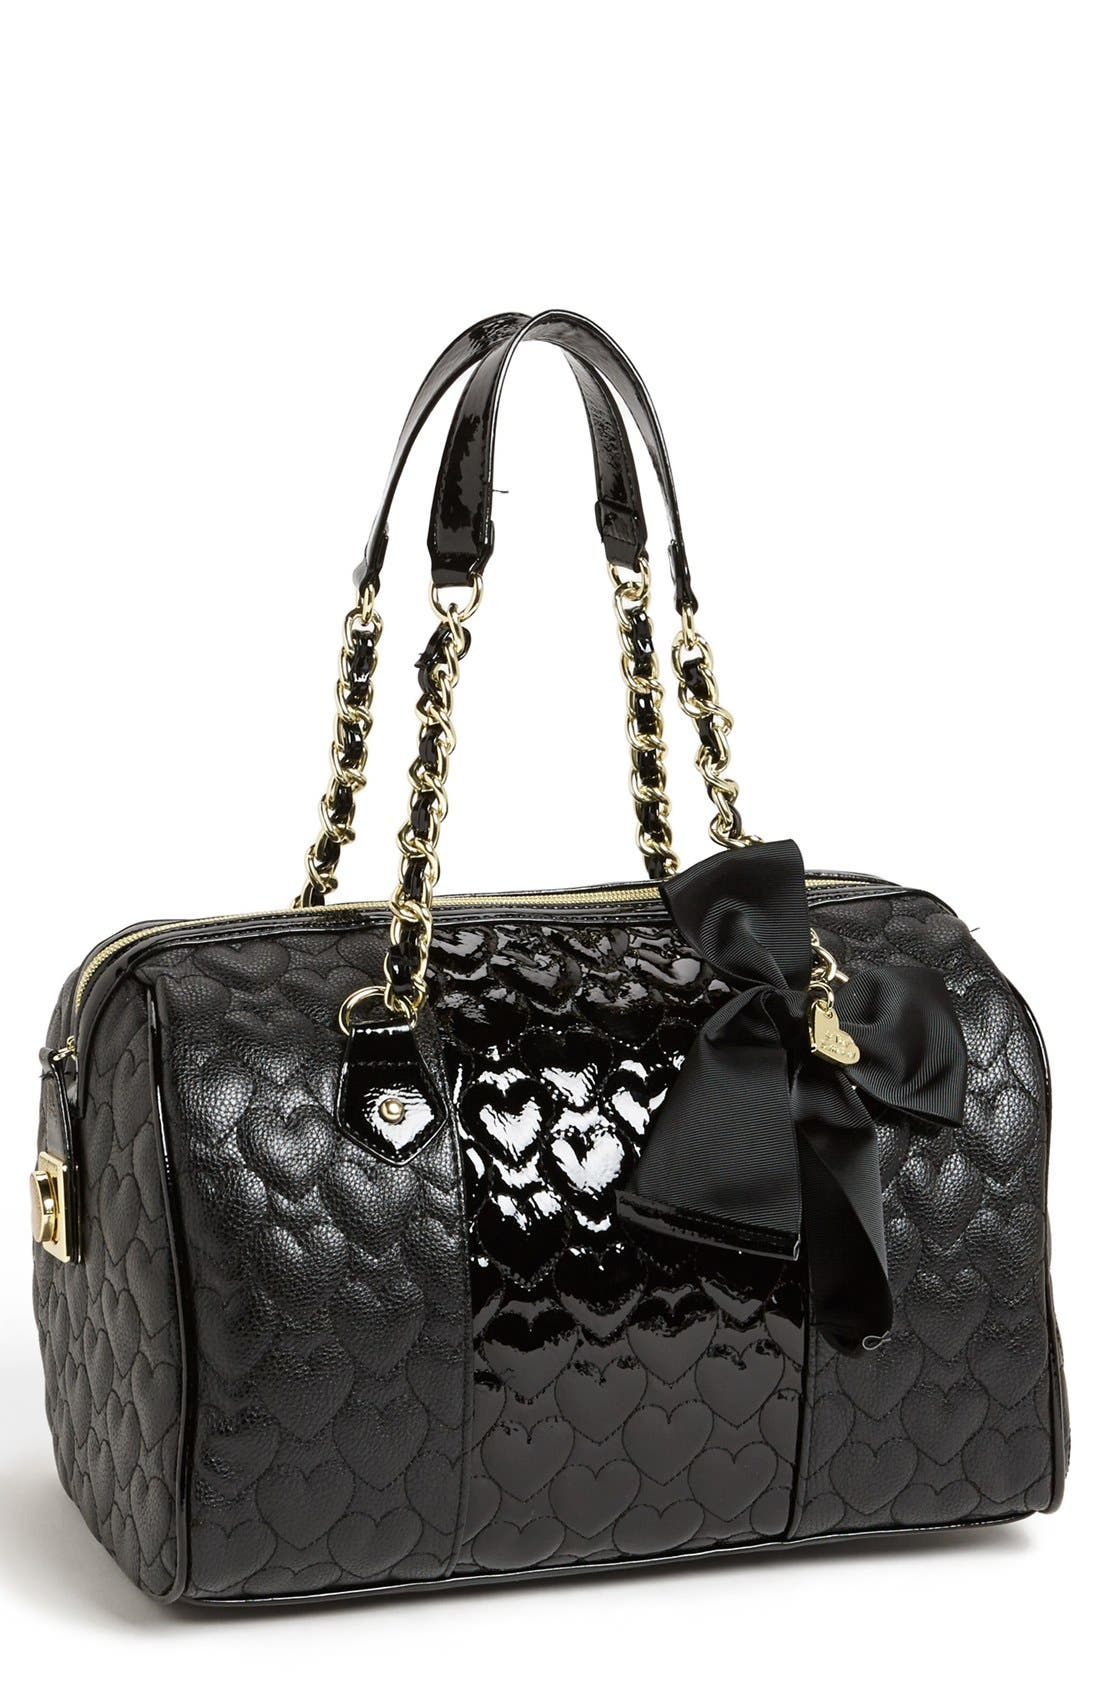 Alternate Image 1 Selected - Betsey Johnson 'Be My Wonderful' Satchel